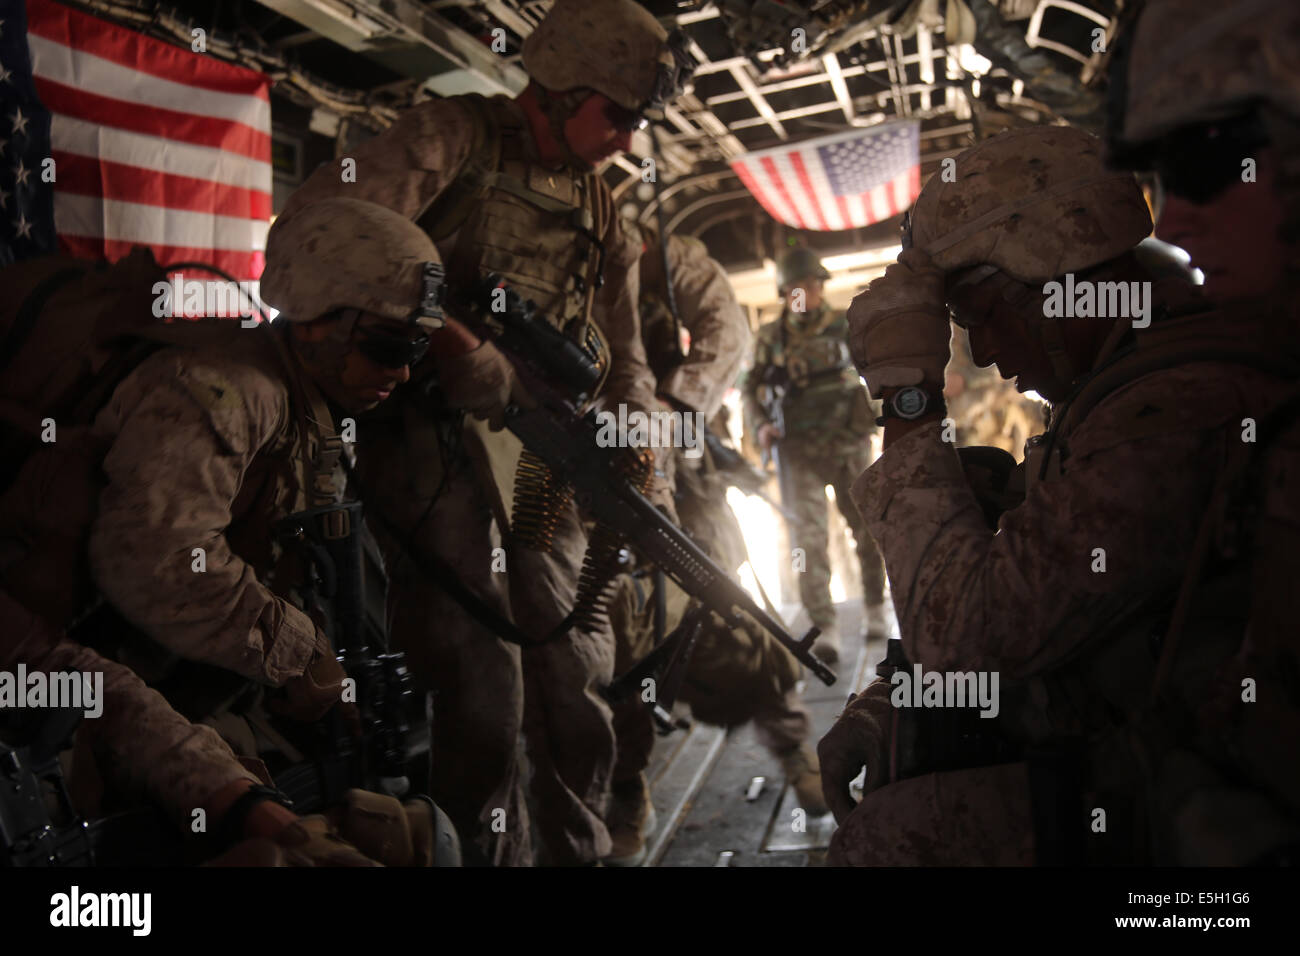 U.S. Marines with Bravo Company, 1st Battalion, 7th Marine Regiment board a CH-53E Super Stallion helicopter during Stock Photo